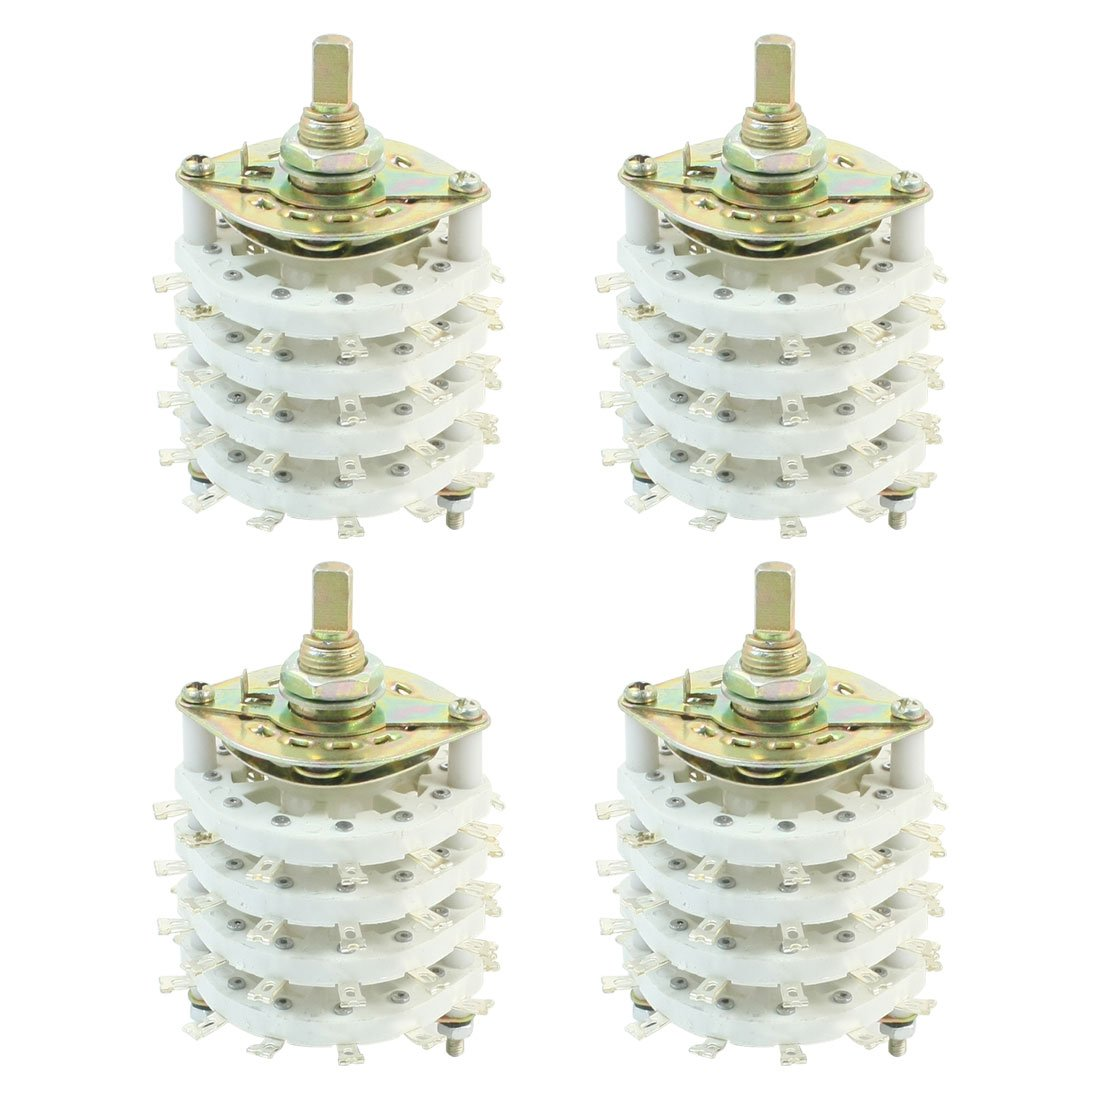 uxcell 4PCS Band Channael Rotary Switch 4P11T 4 Pole 11 Position Four Decks